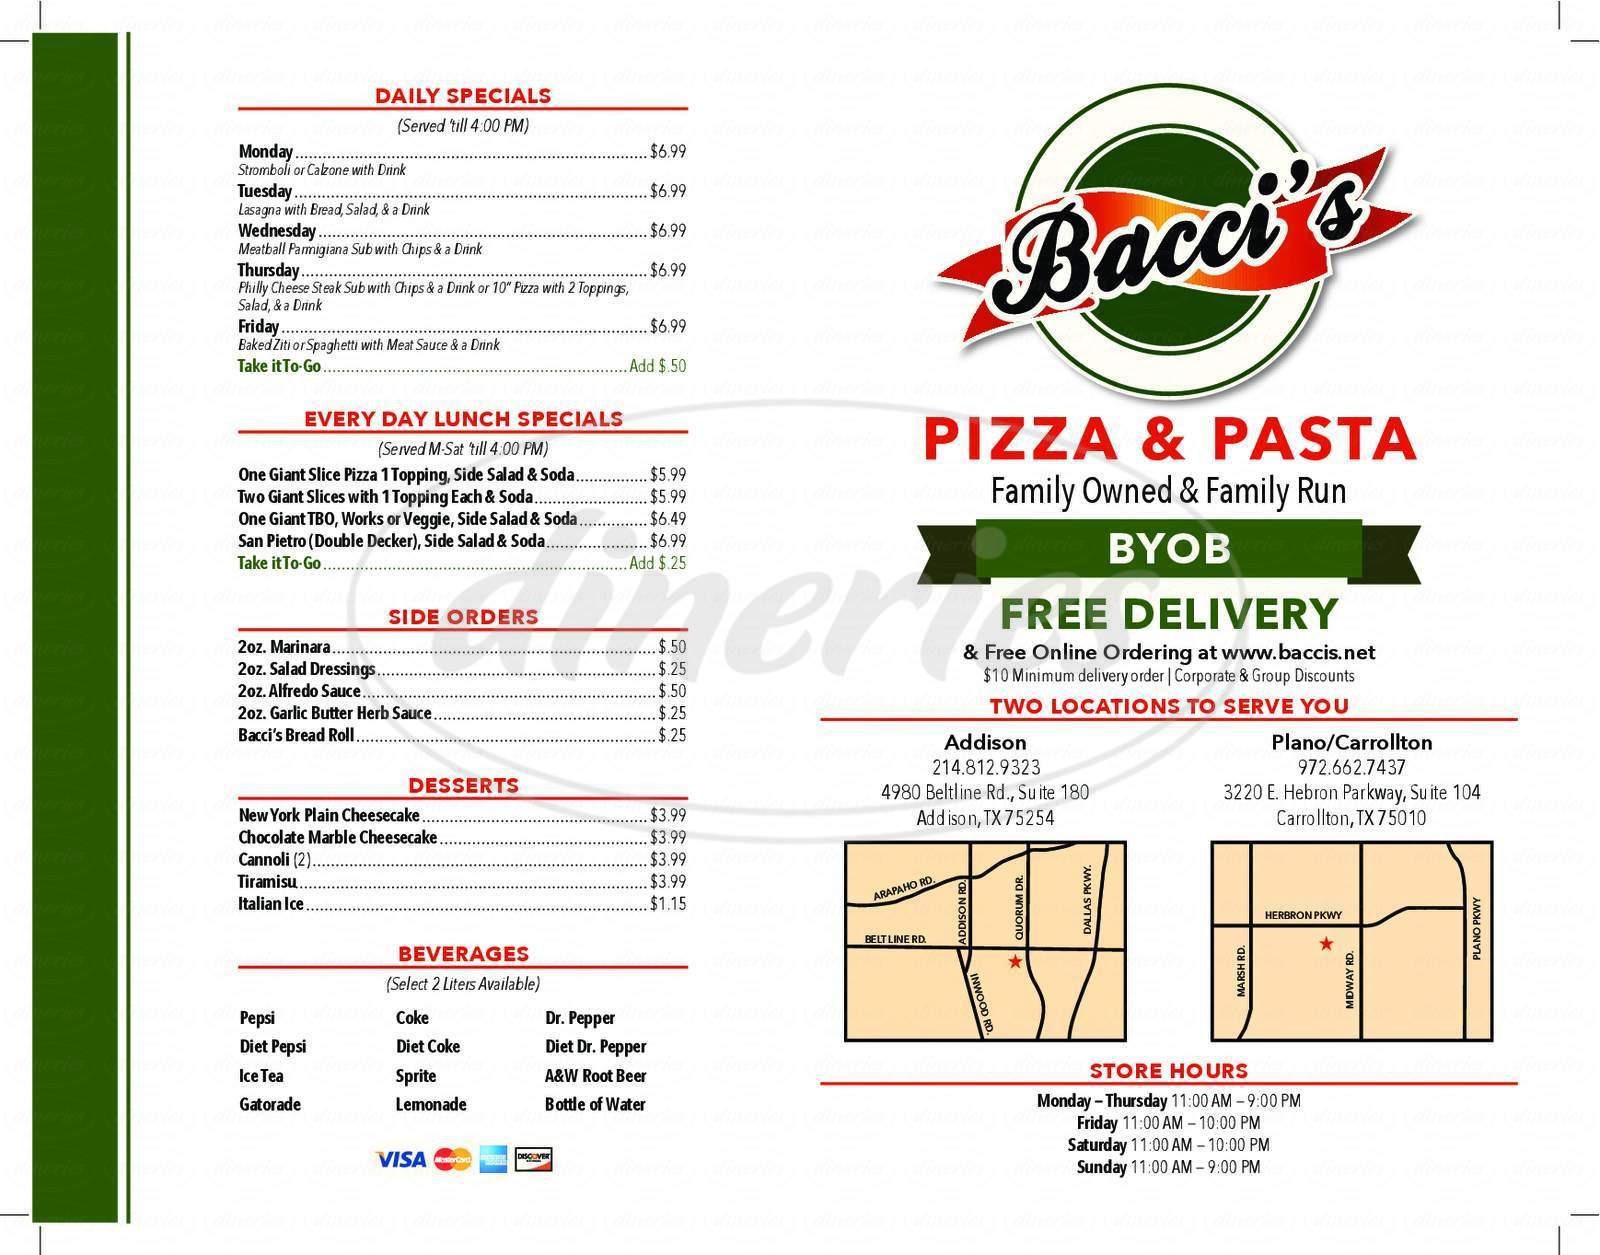 menu for Bacci's Pizza & Pasta